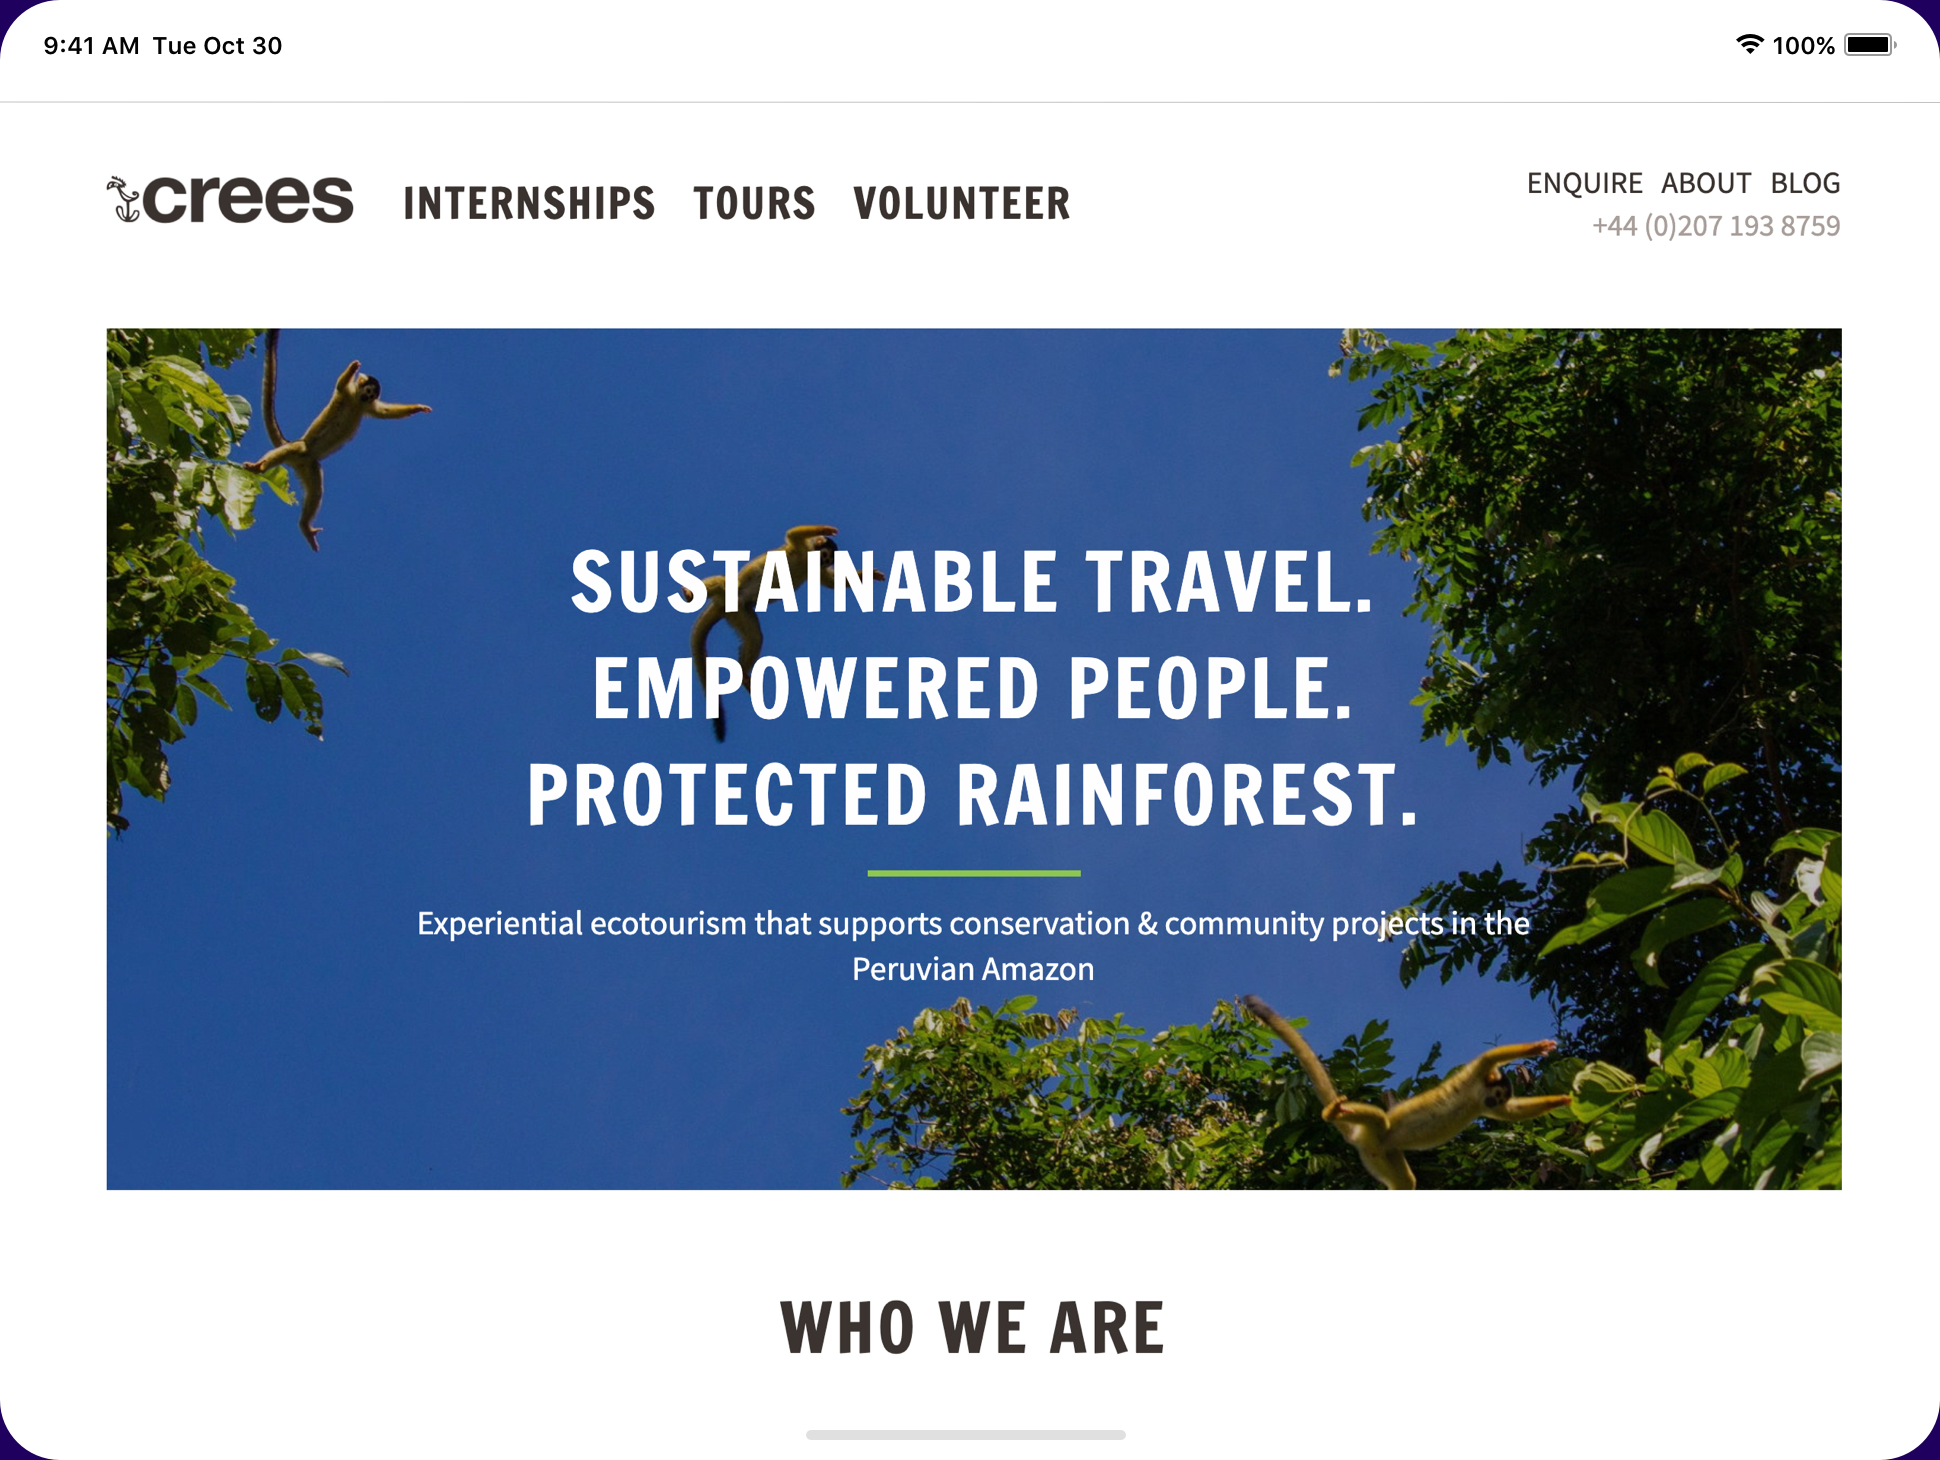 image of crees manu website